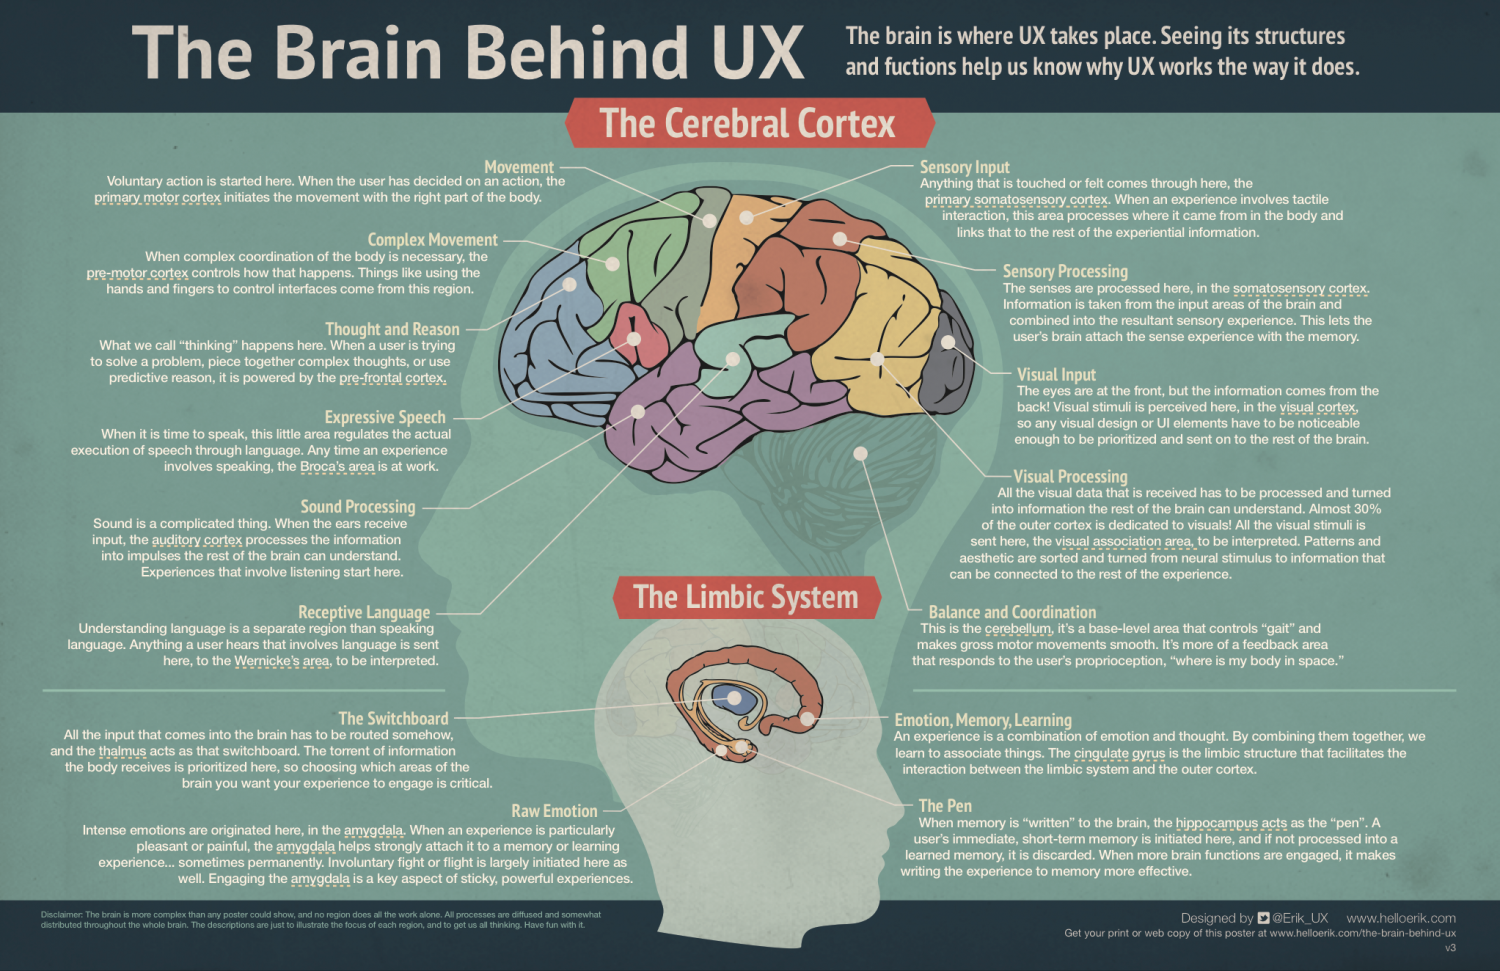 The Brain Behind UX Infographic